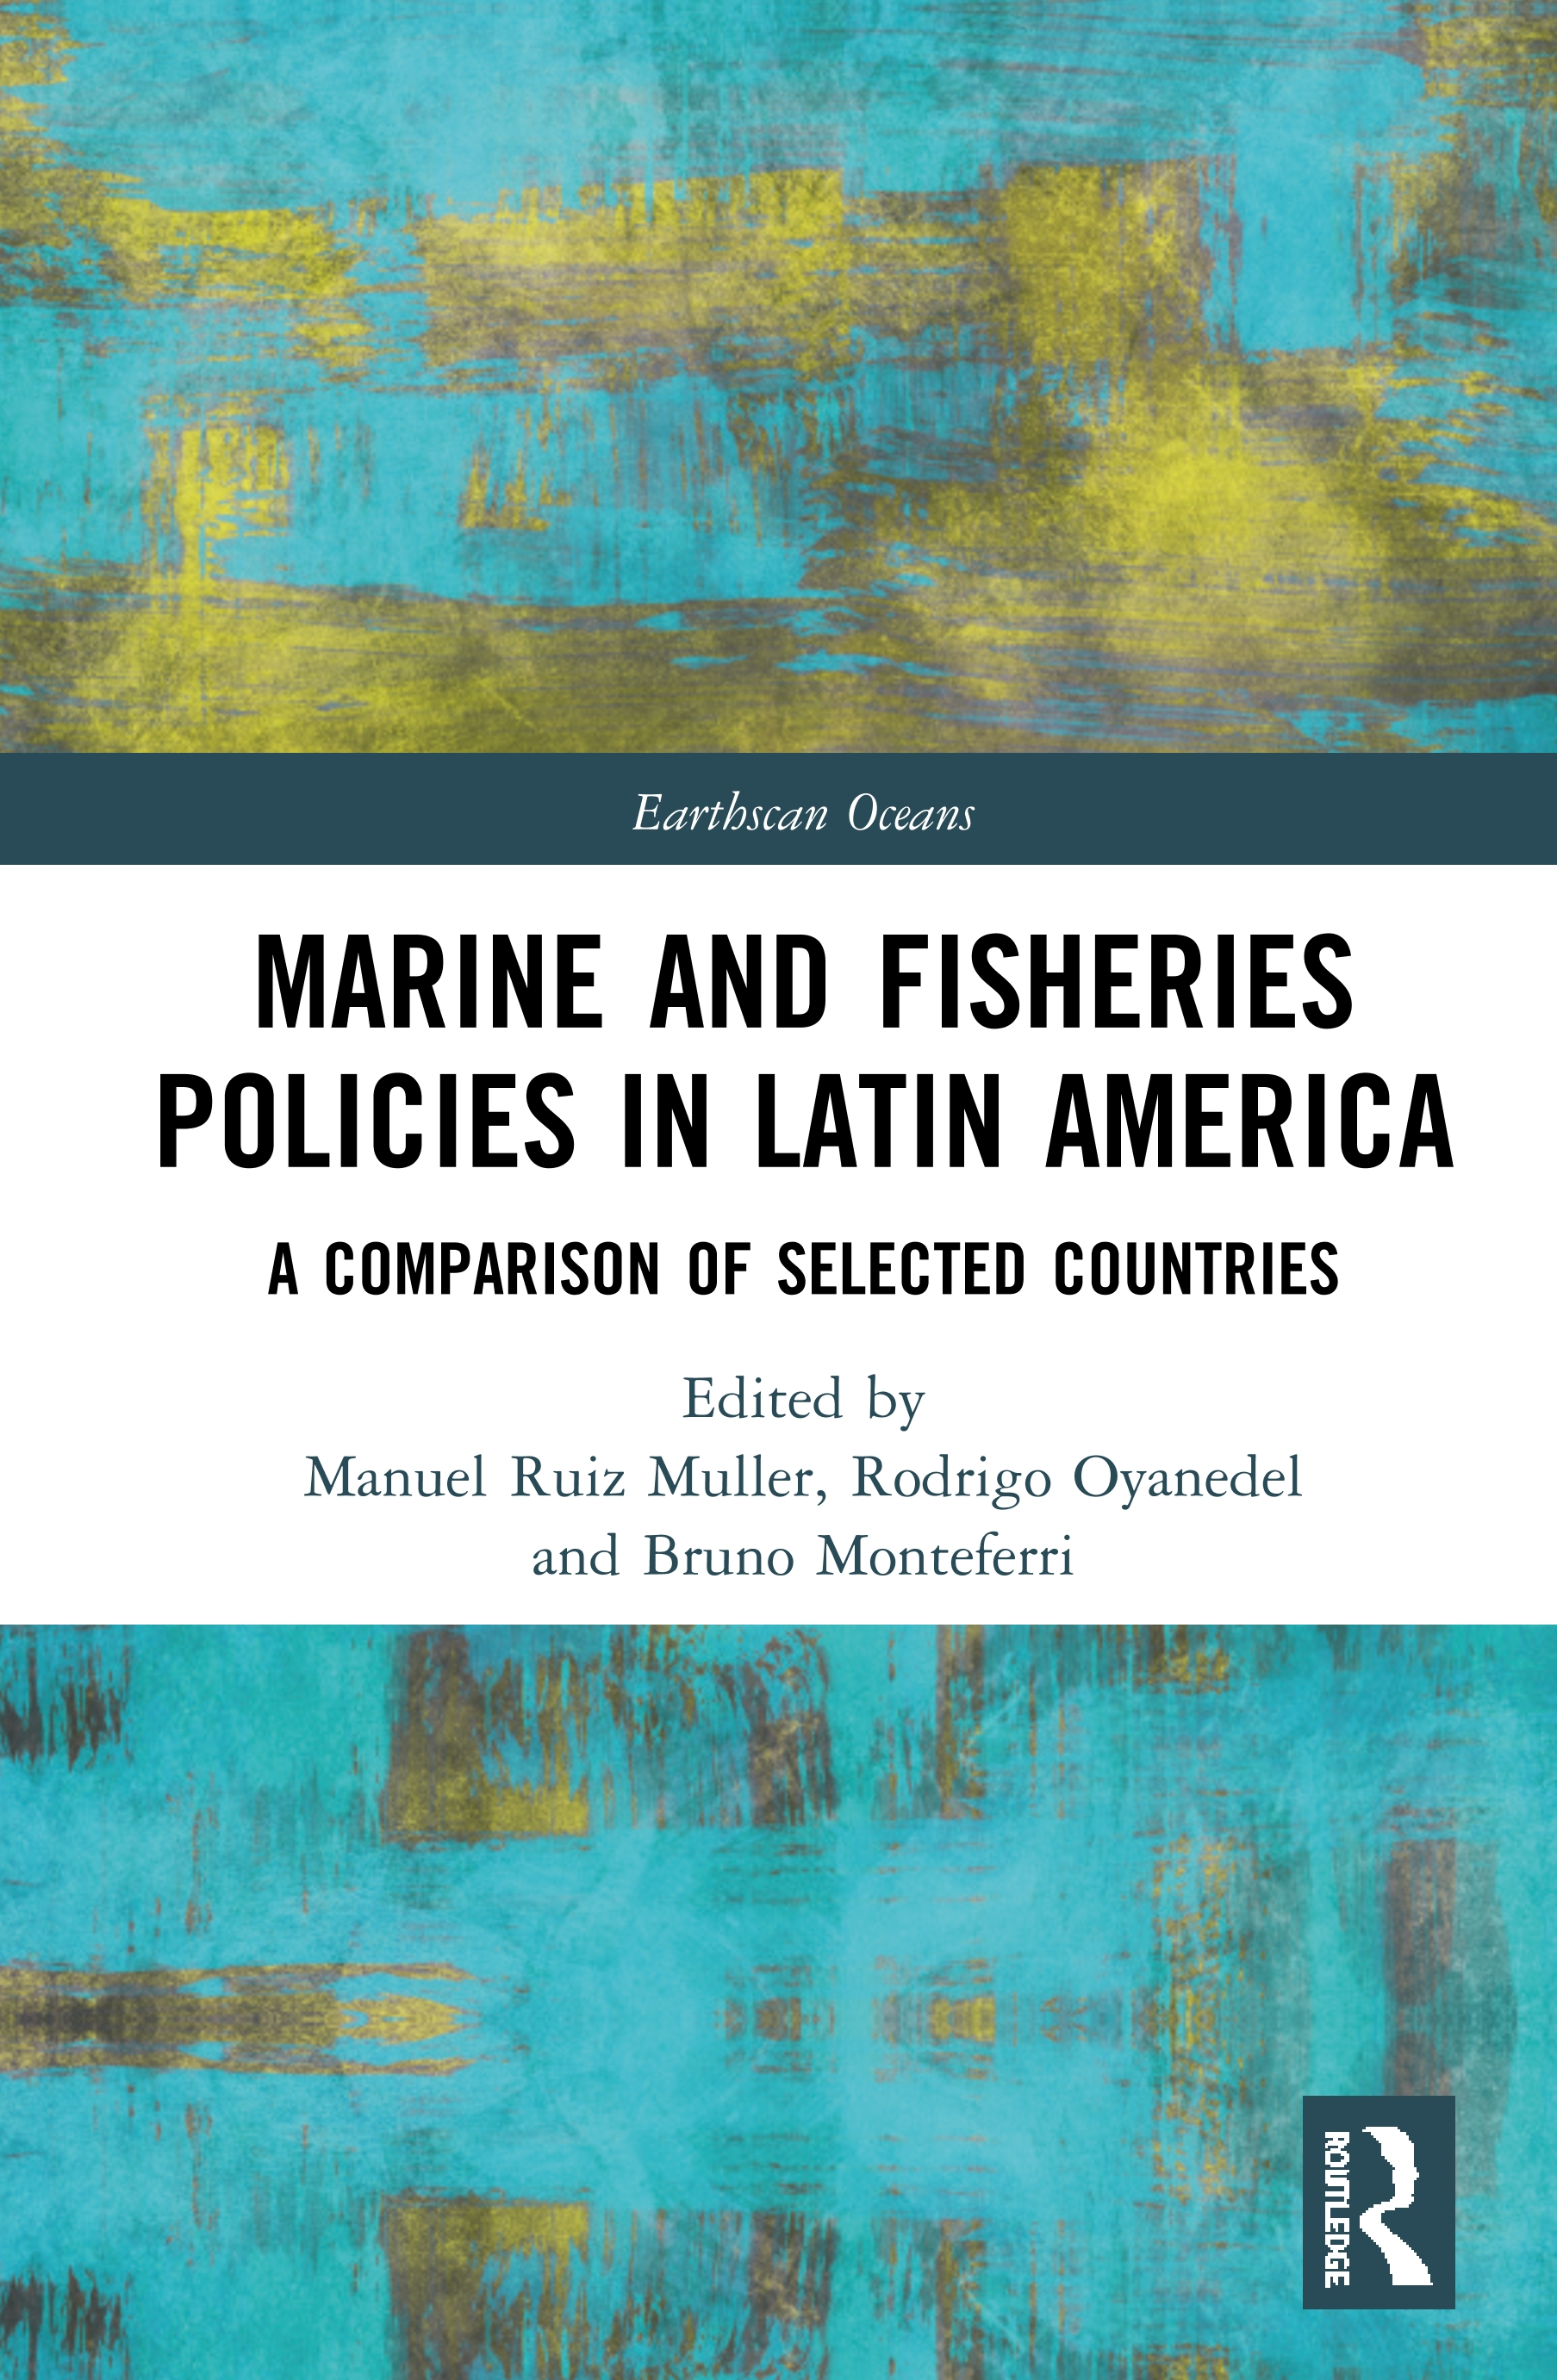 Marine and Fisheries Policies in Latin America: A Comparison of Selected Countries book cover